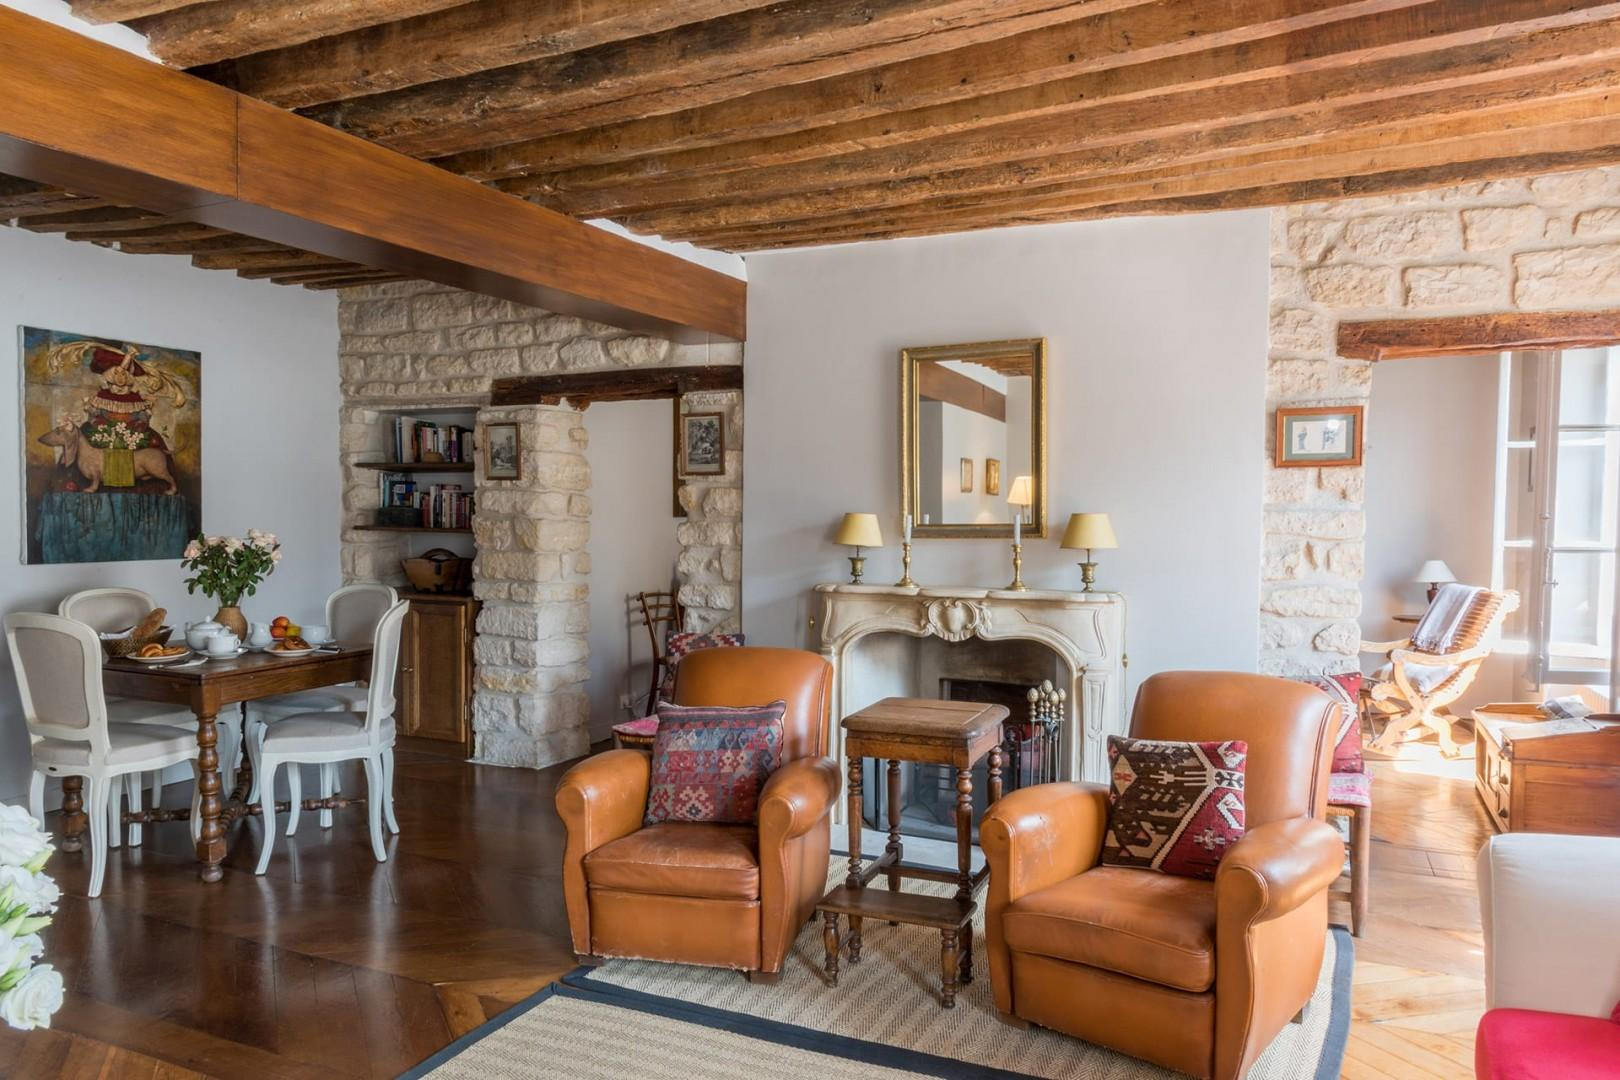 The décor at the Dolcetto perfectly complements the original stone walls.